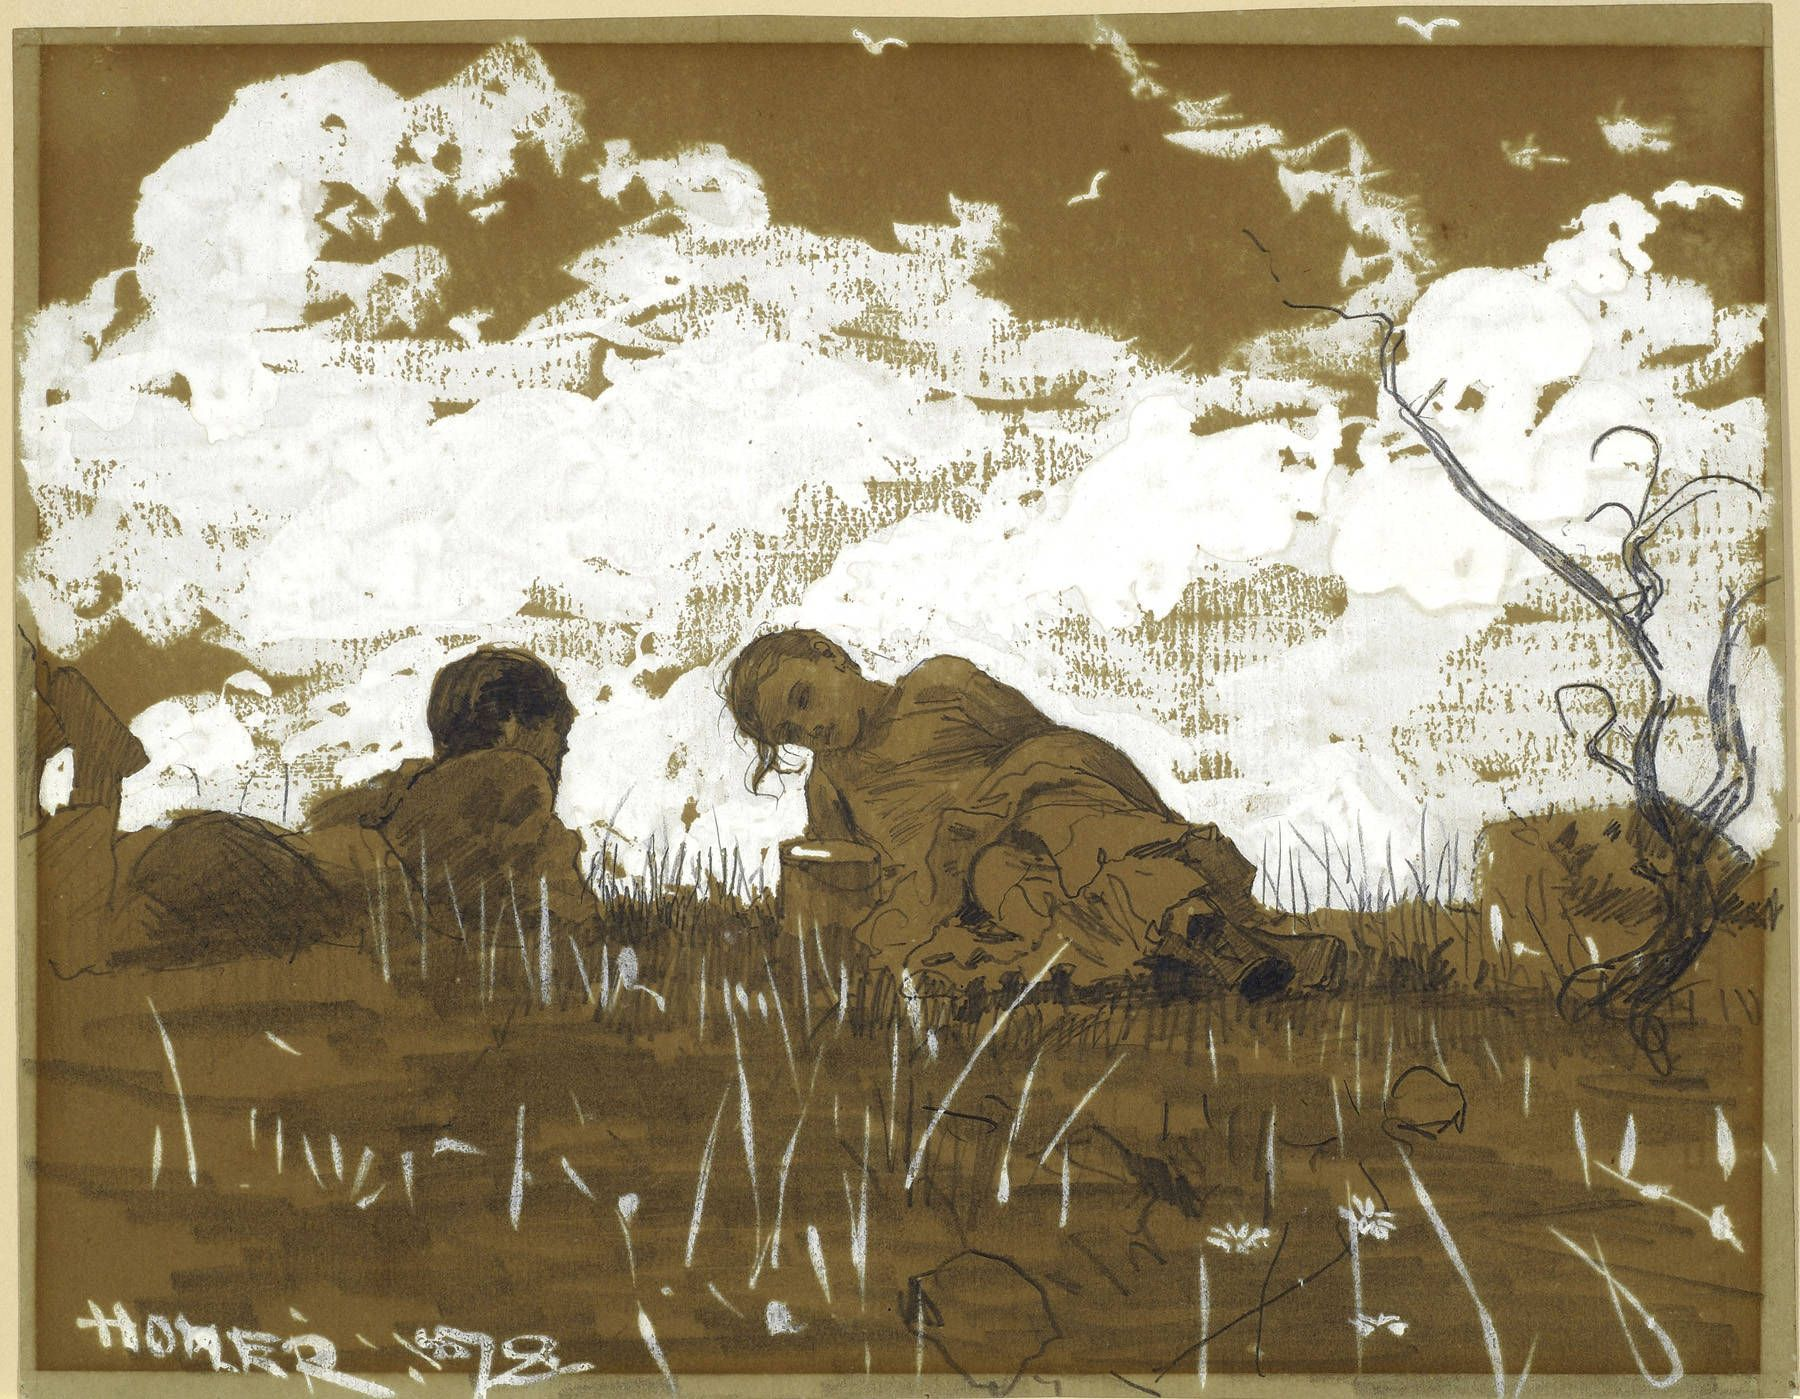 Winslow Homer Watercolors | Winslow Homer - Two Children in a Field, 1878, Page 2